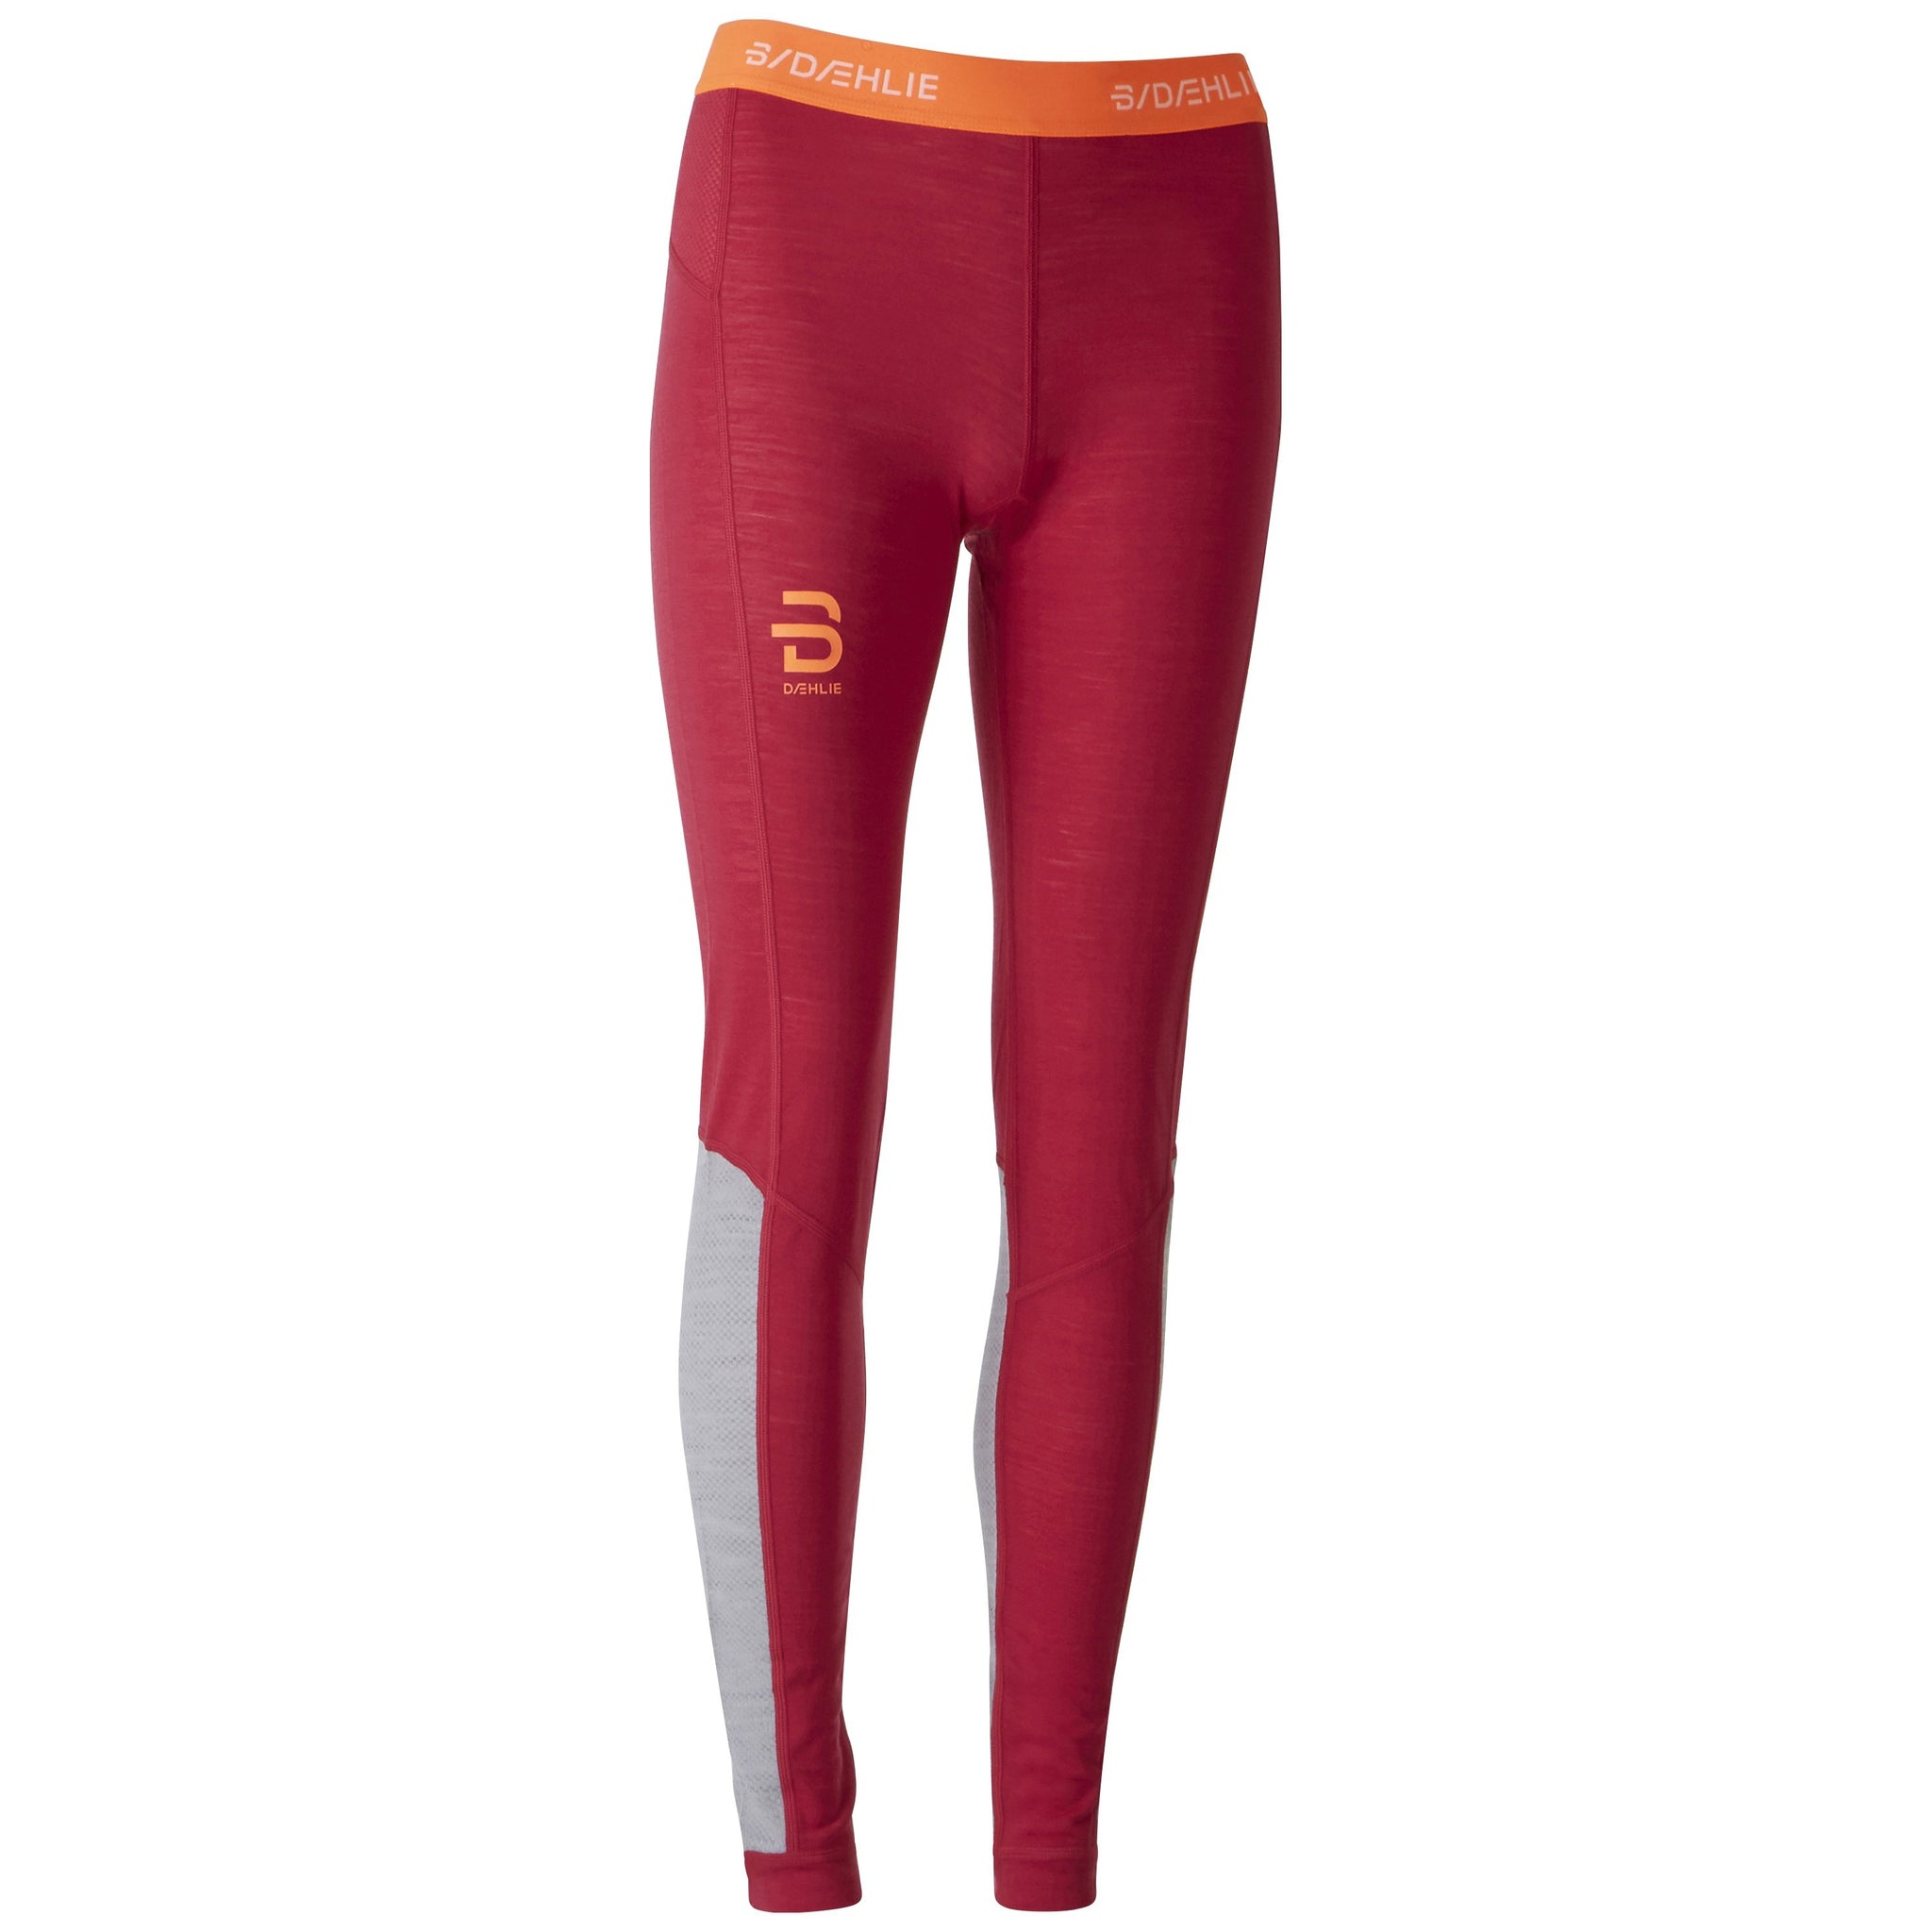 Daehlie Training Wool Ladies Pants